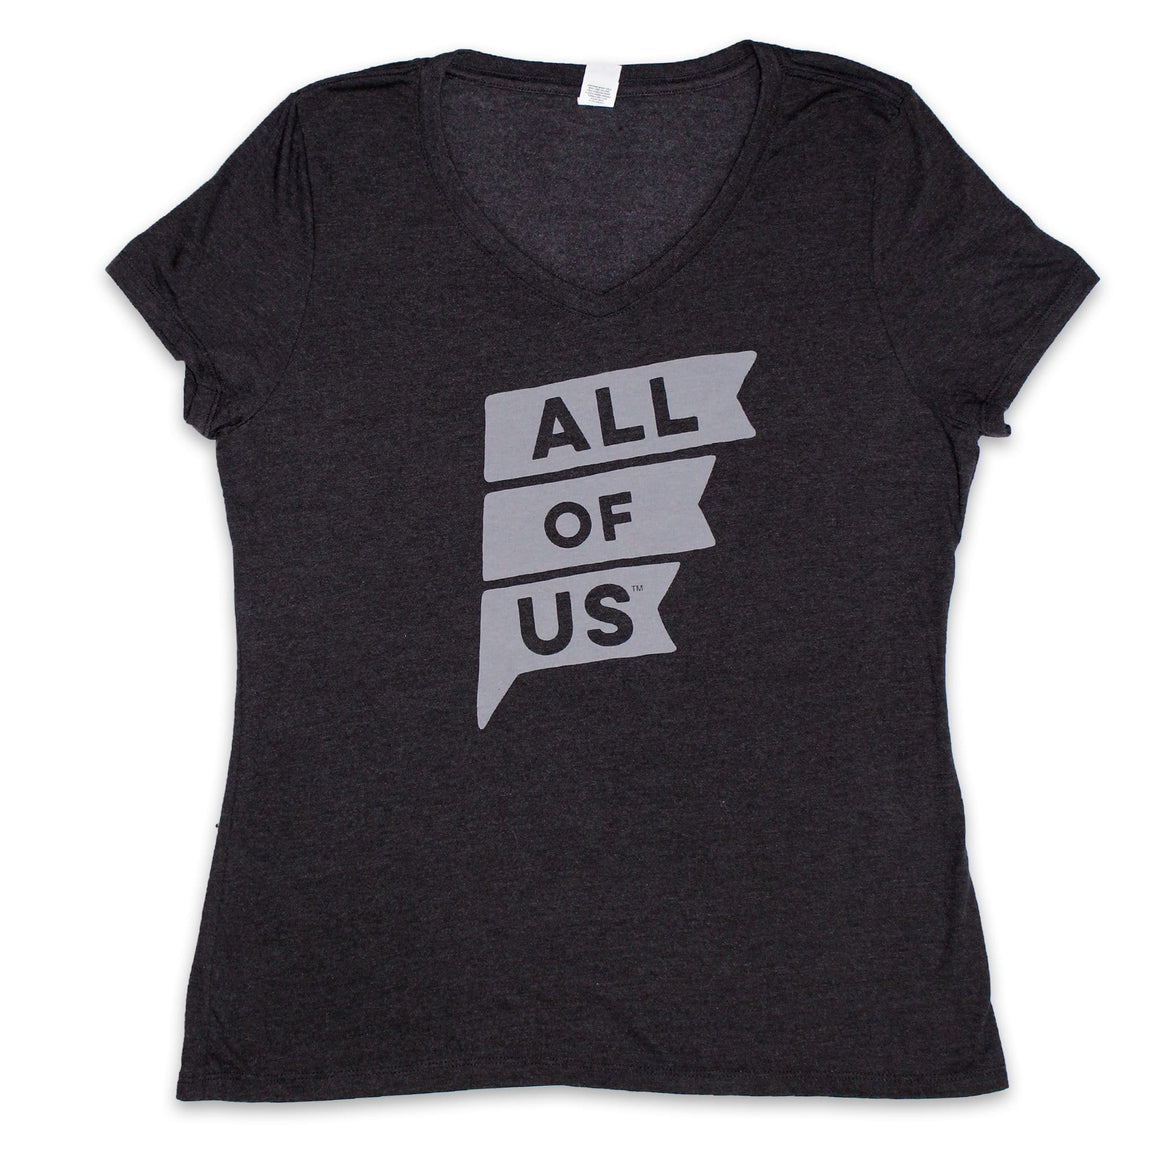 Women's Classic Black Frost V-Neck Tee with All of Us Flag in Tonal Grey